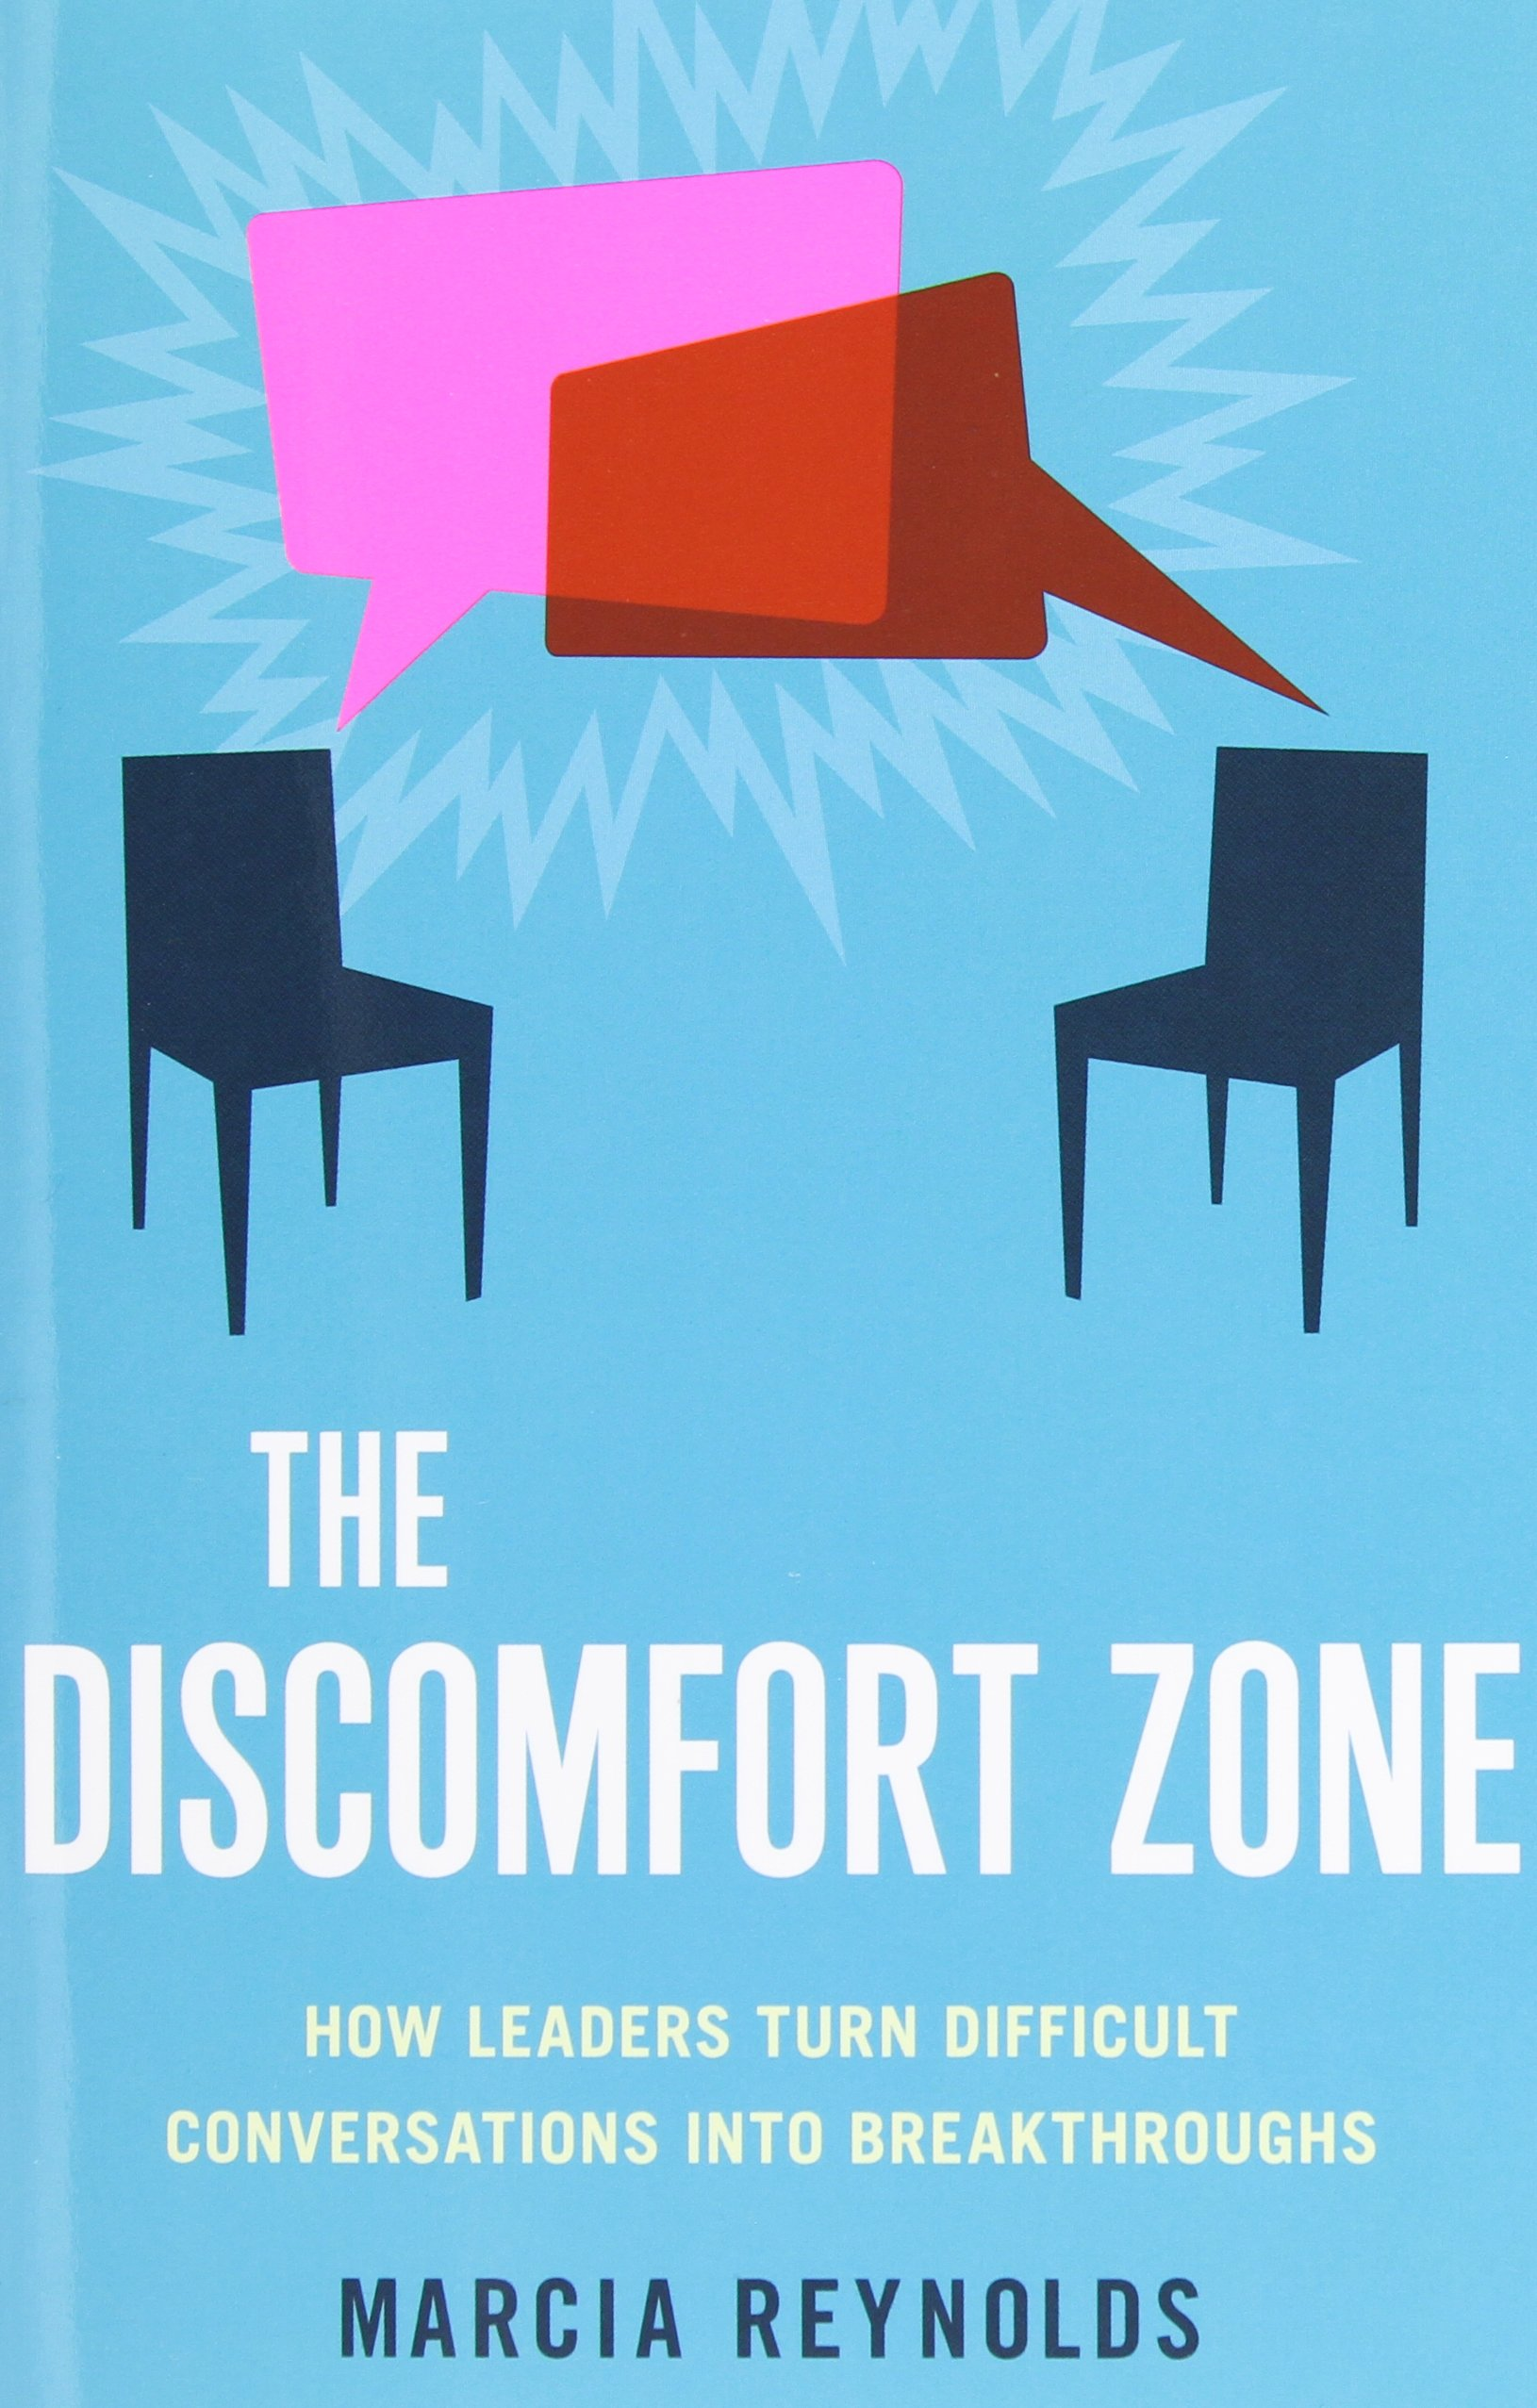 Discomfort Zone Difficult Conversations Breakthroughs product image